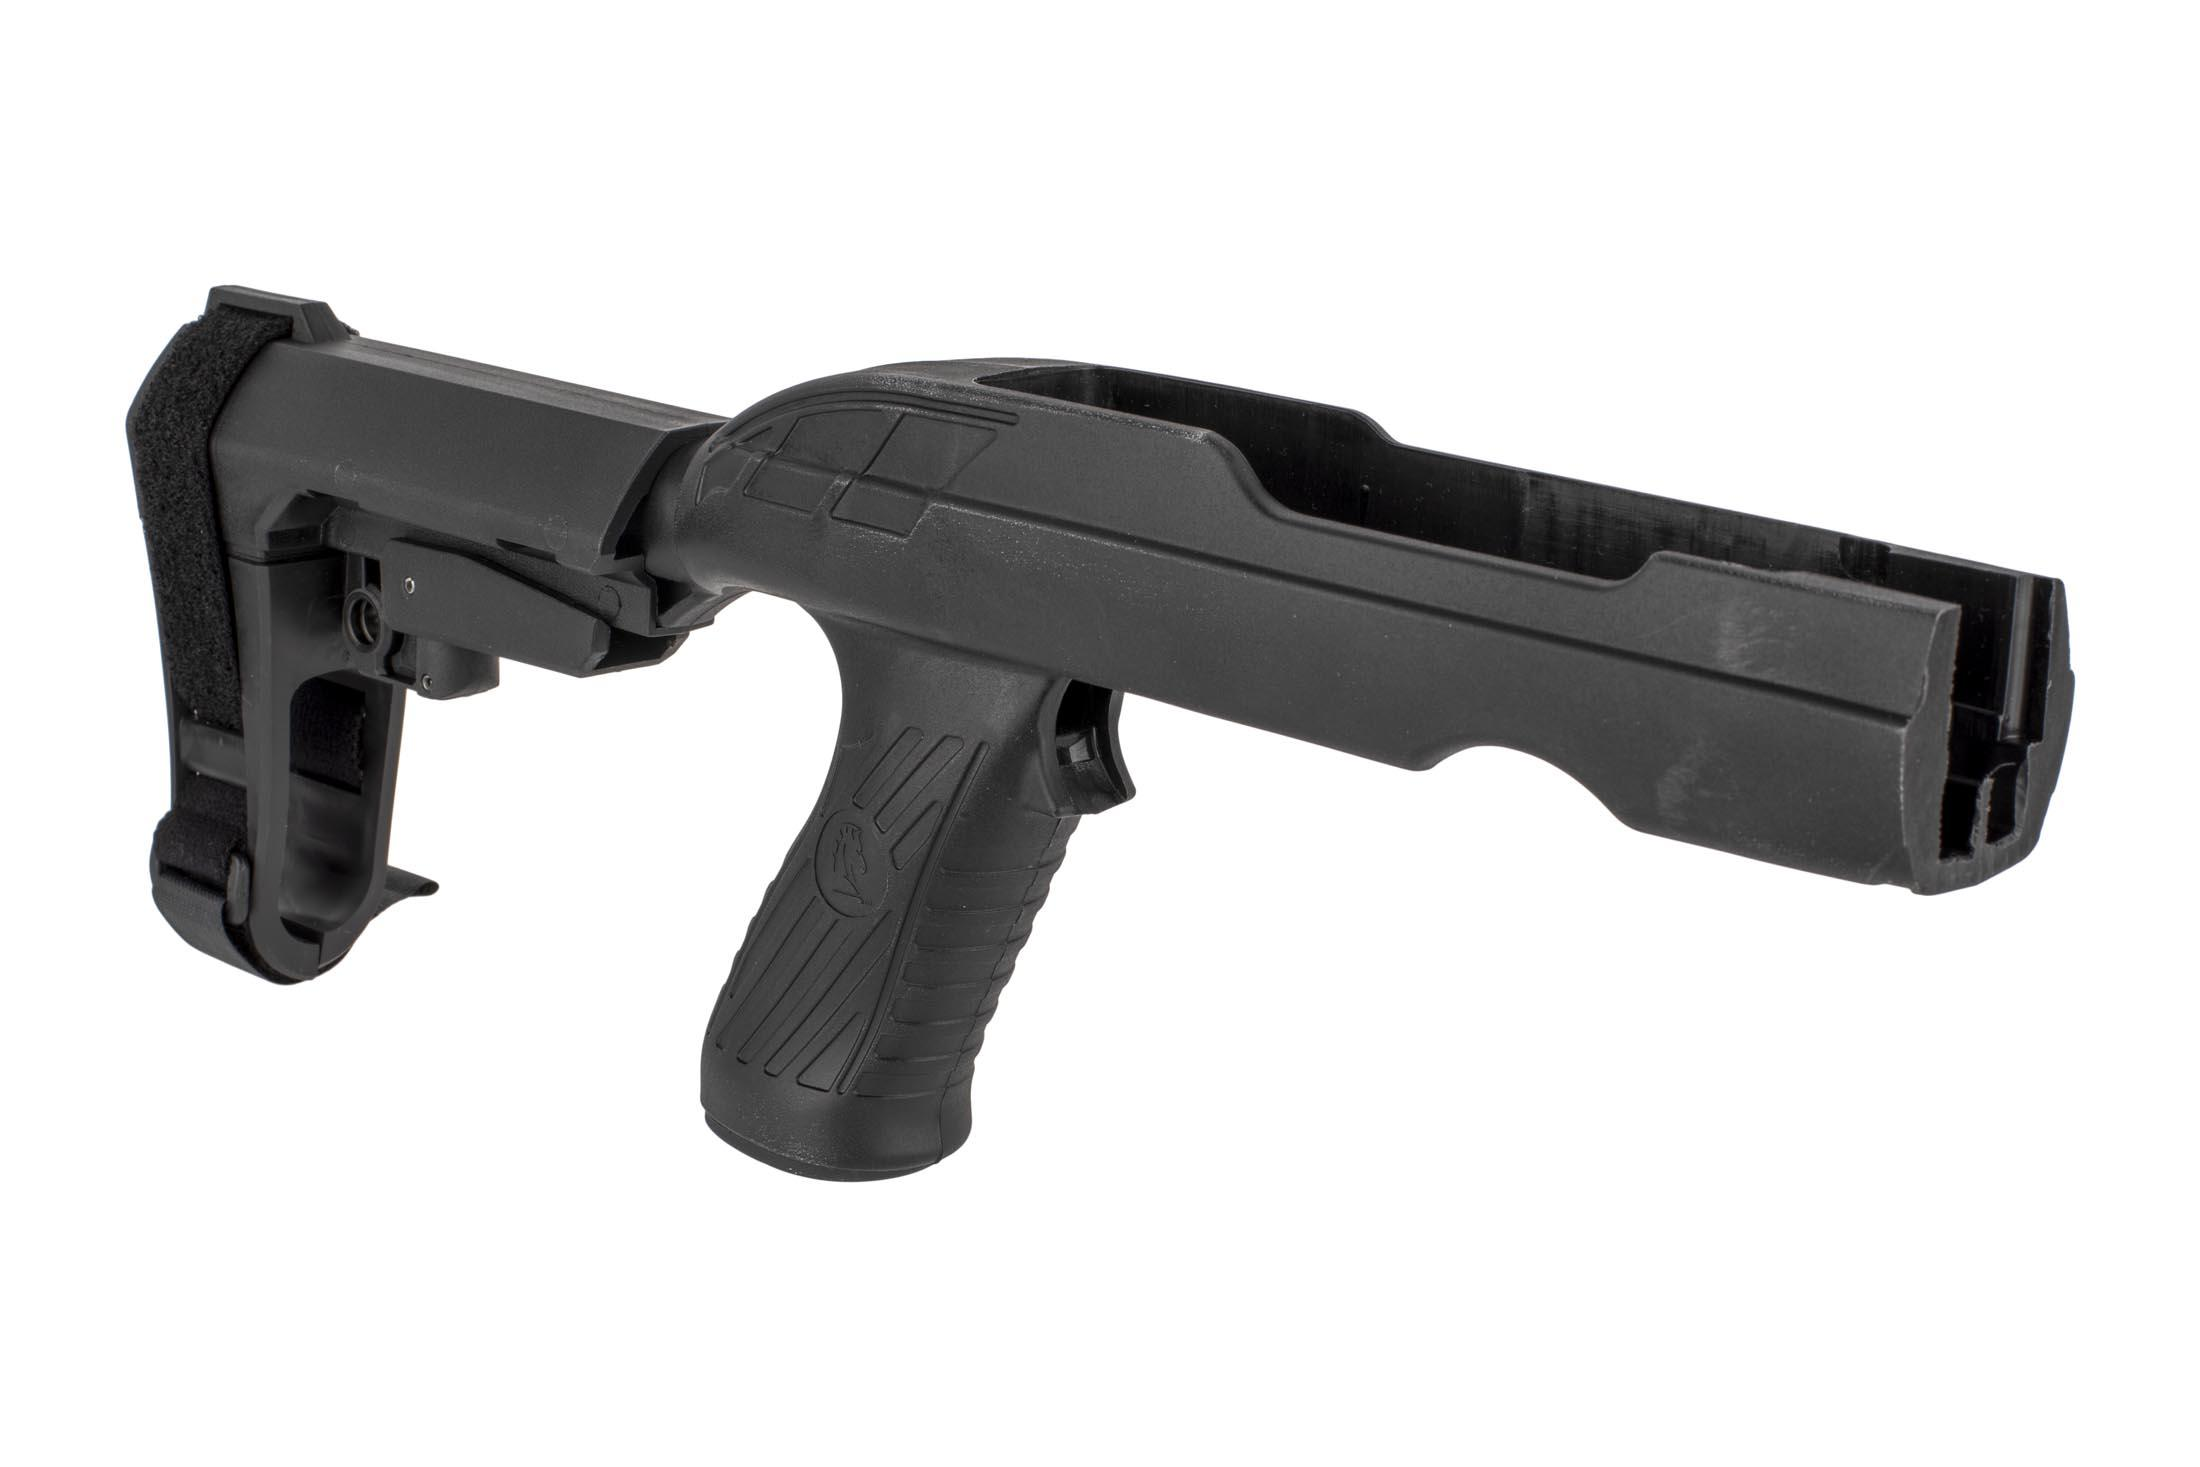 The SB Tactical SBA3 22 Charger take down pistol arm brace kit is compatible with most barrel contours